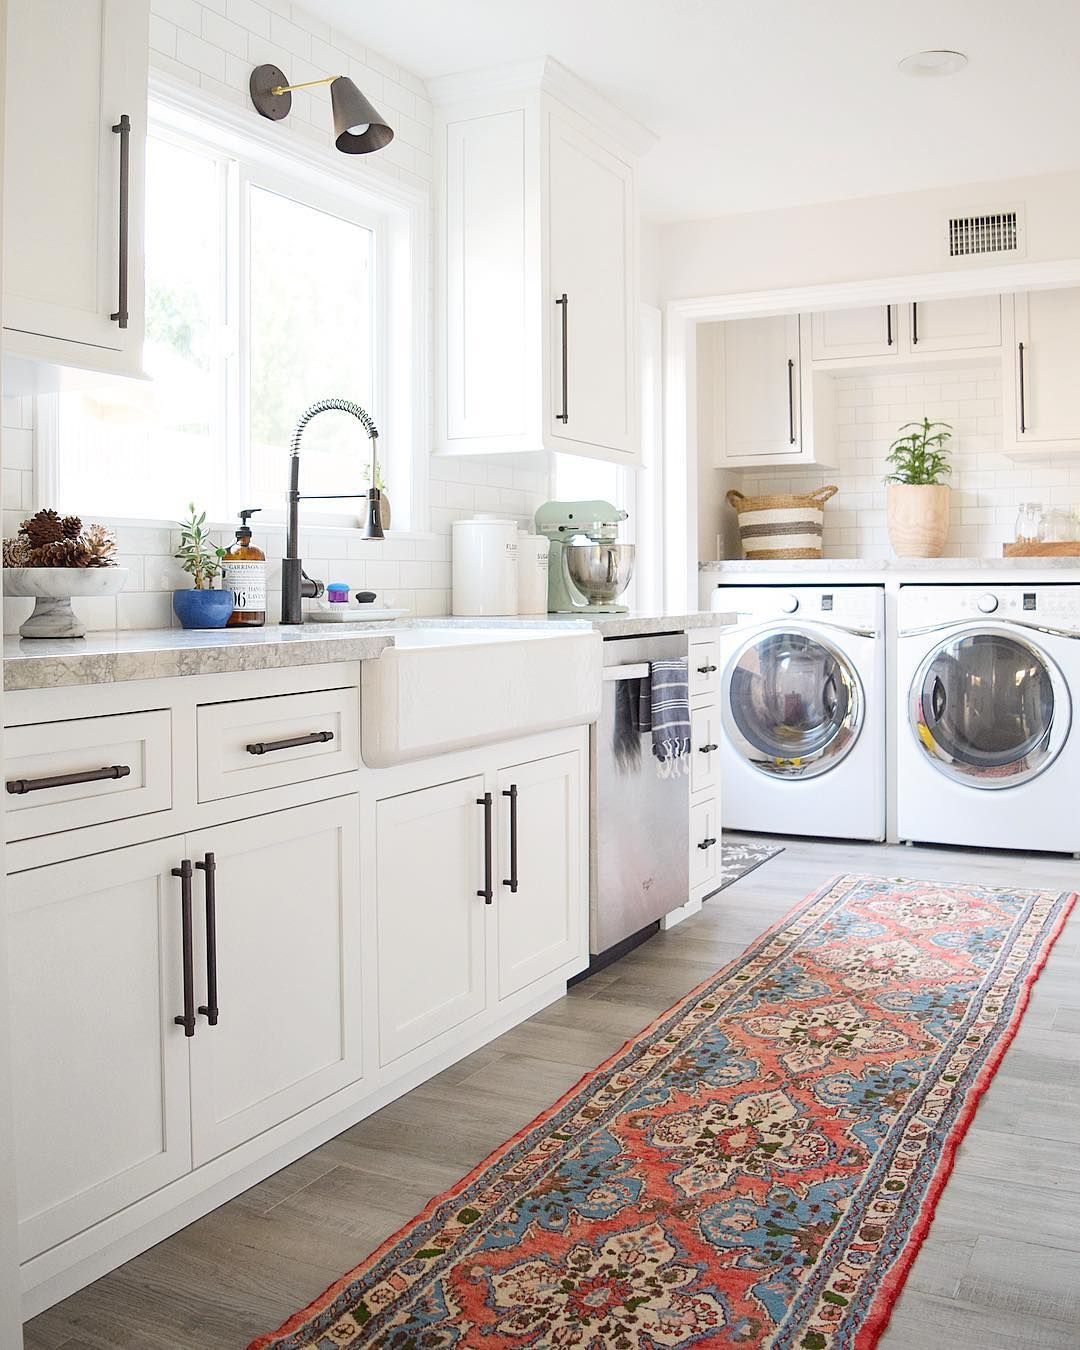 Pin By Kate Martinie On Dream Home Luxury Kitchens Cool Kitchens Laundry Room Decor